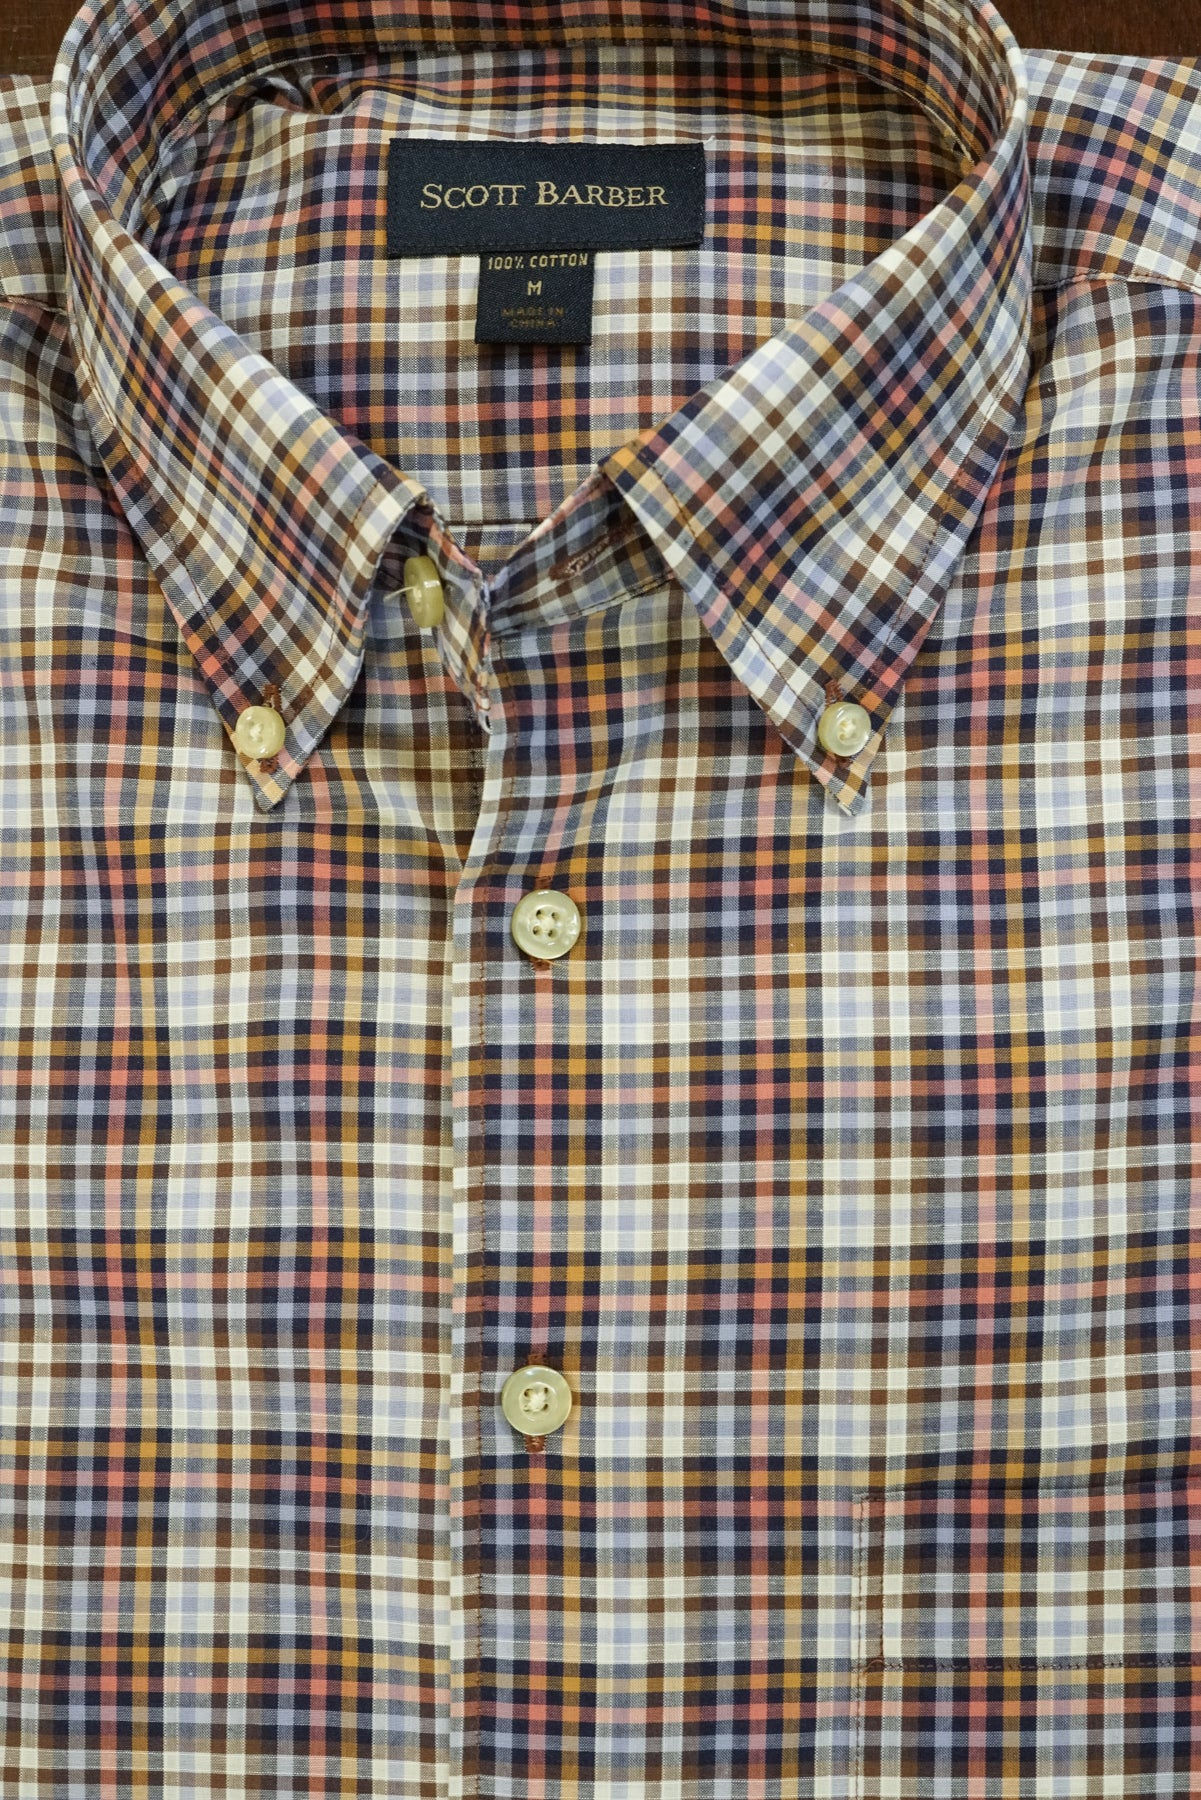 Dusty Blue, Navy and Khaki Plaid Button Down Shirt by Scott Barber - Rainwater's Men's Clothing and Tuxedo Rental